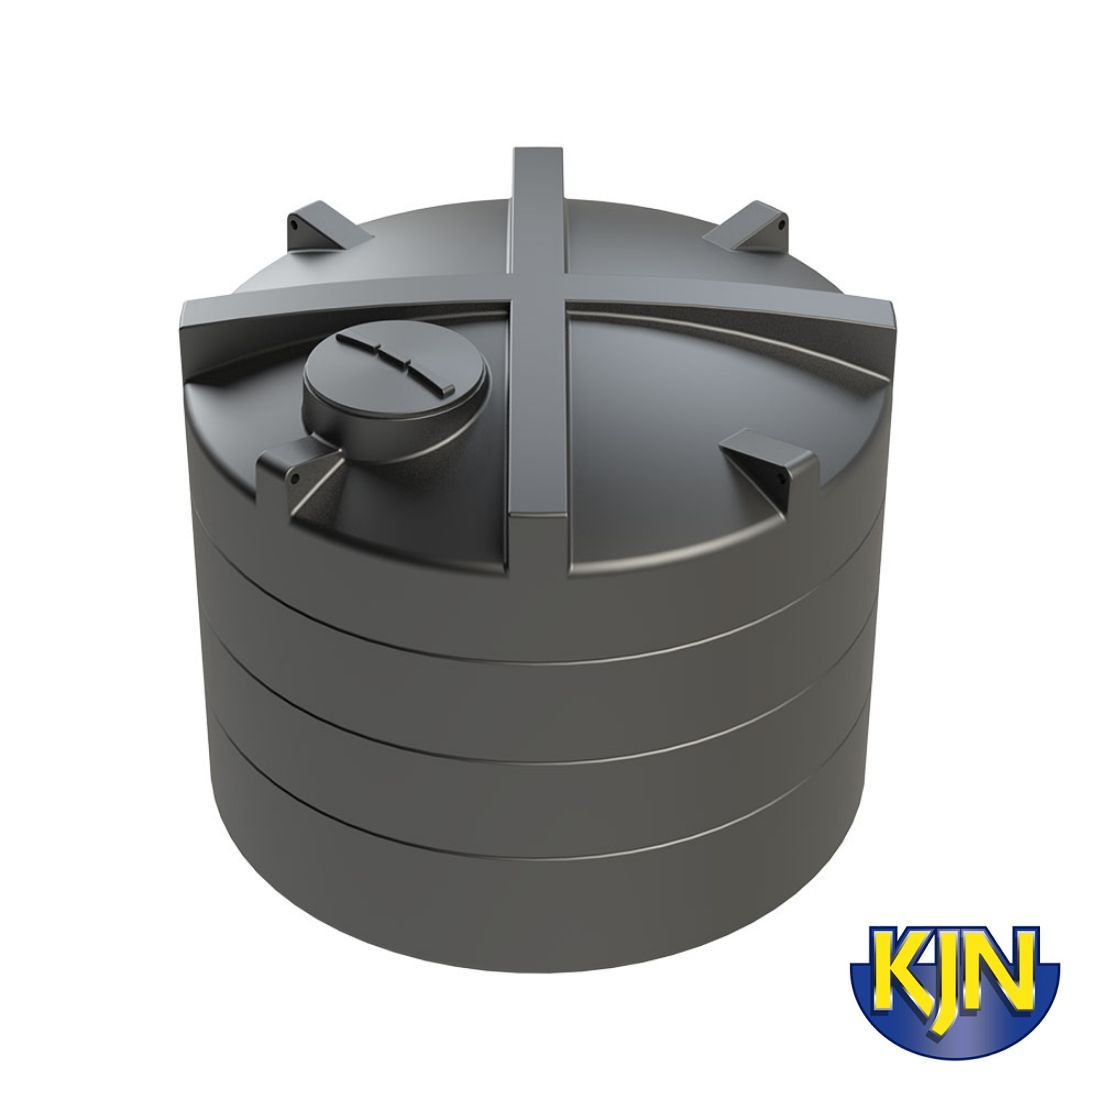 Enduramaxx 8,500 Litre Vertical Potable WRAS Water Storage Tank